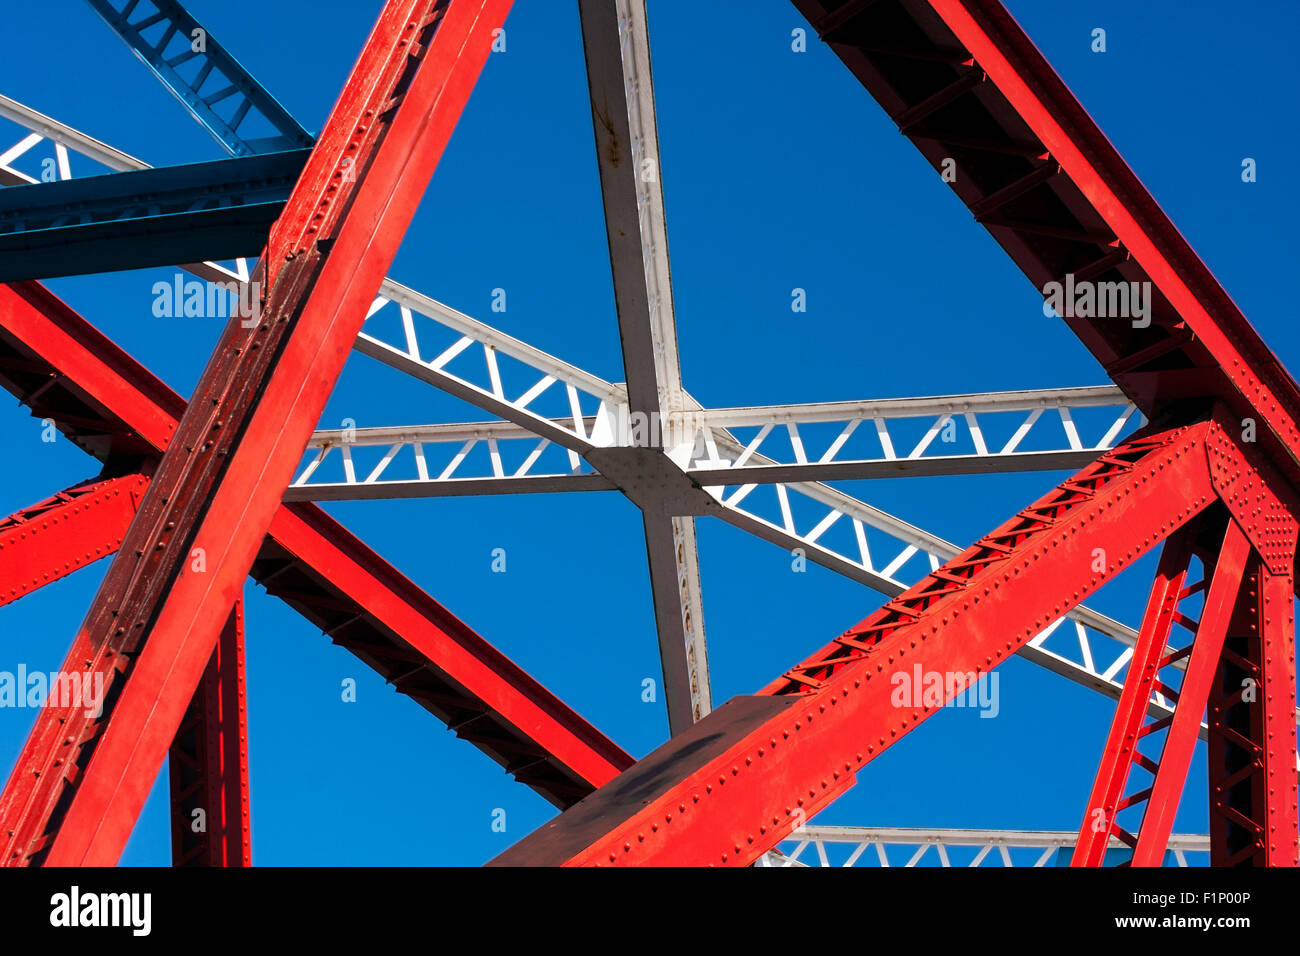 Abstract View of Detroit Bridge Salford Quays - Stock Image